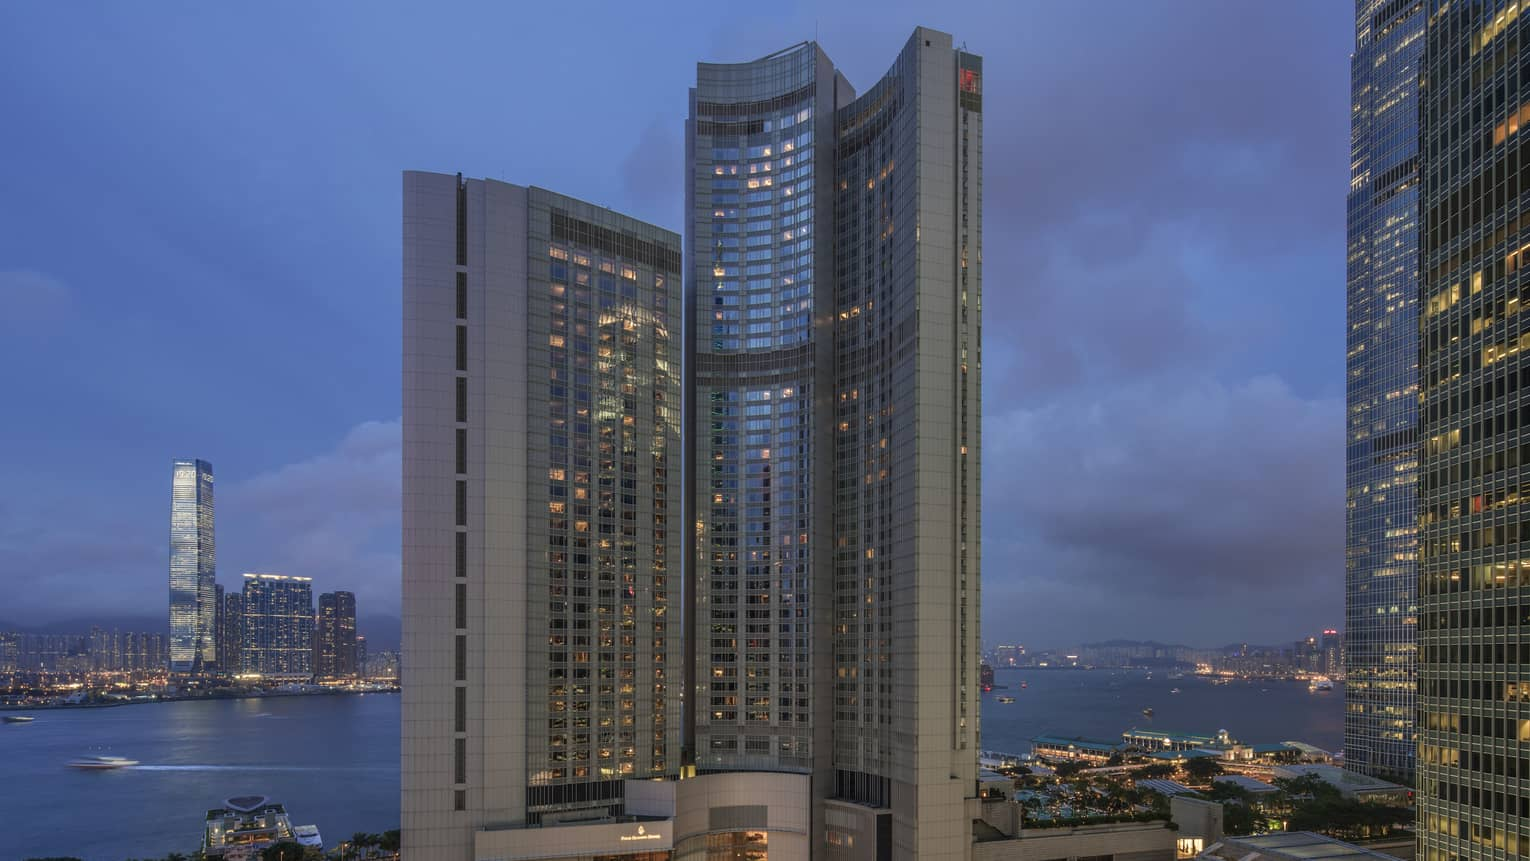 Four Seasons Hotel Hong Kong high rise exterior at dusk